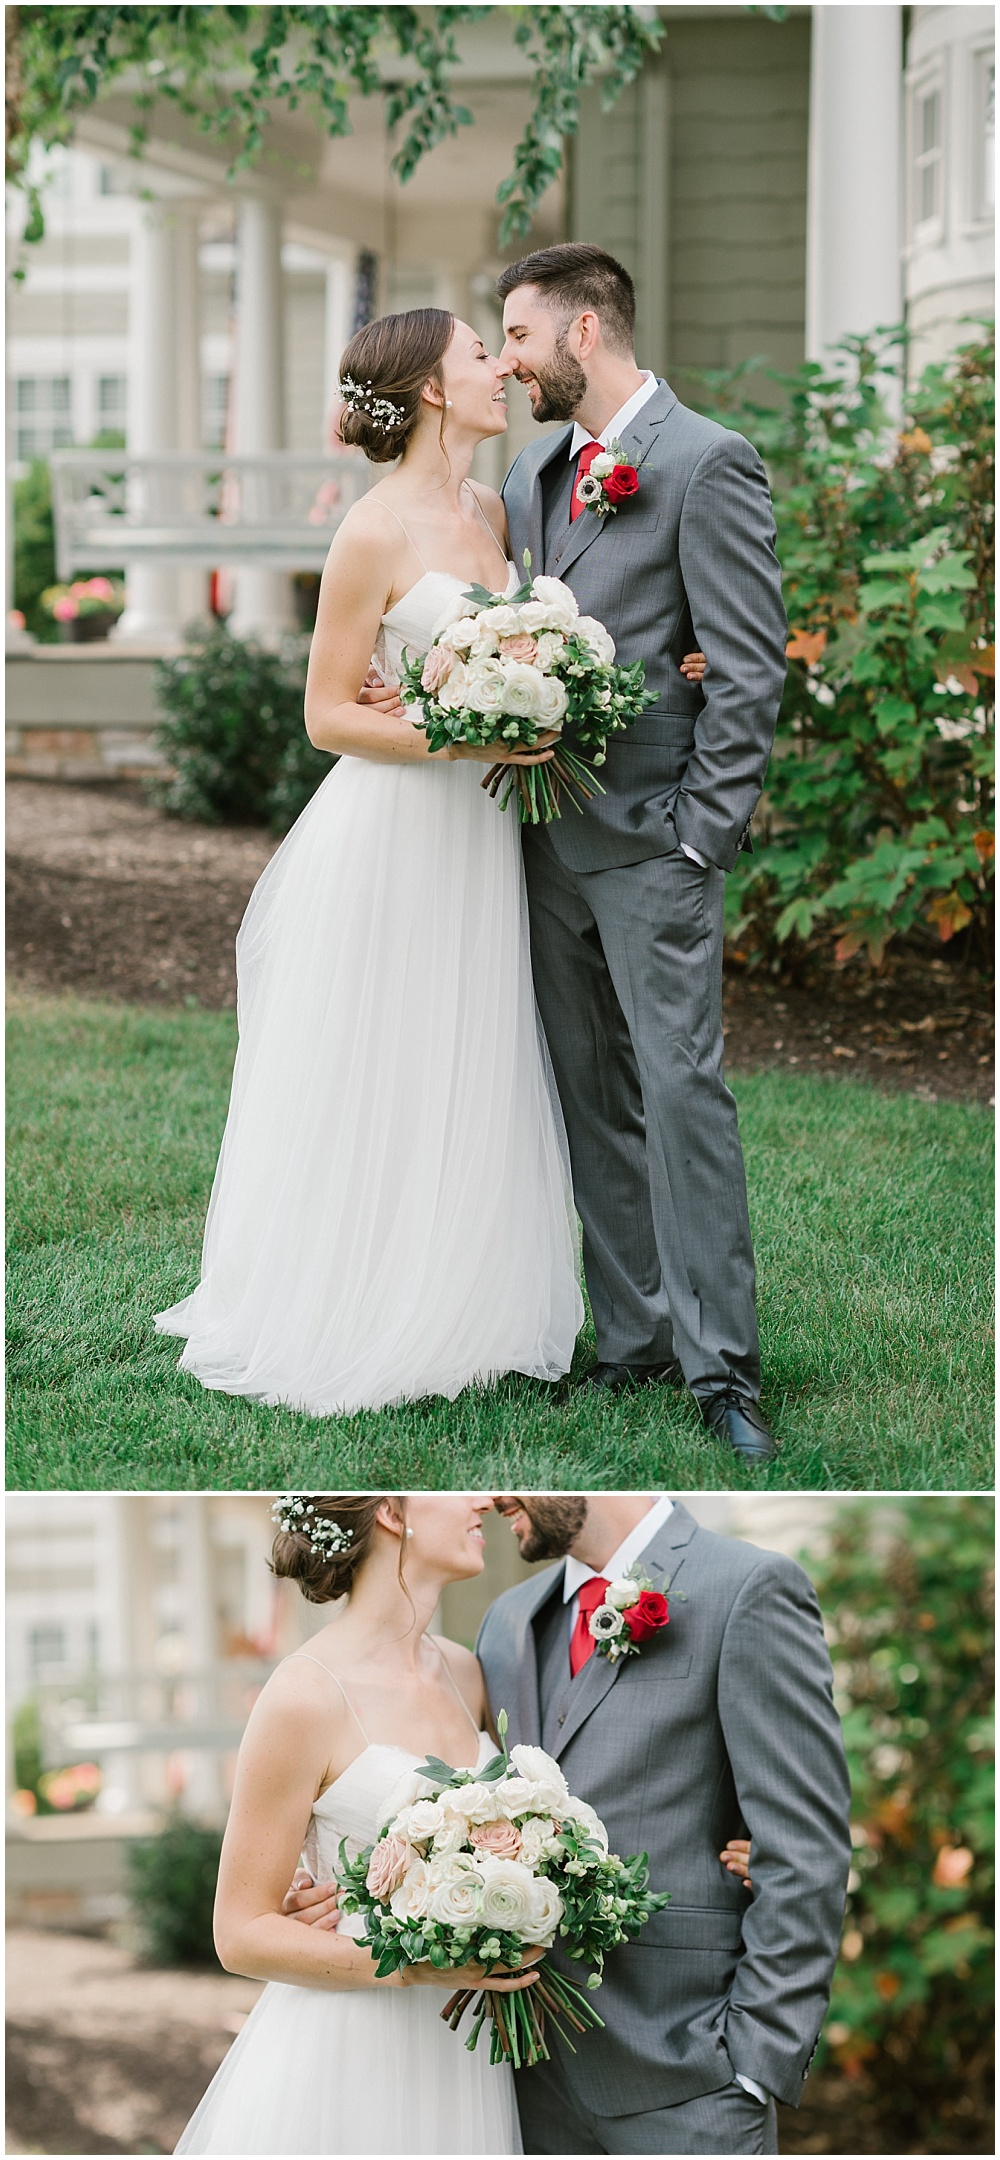 Bride and groom first look Fall garden-inspired wedding at the Ritz Charles Garden Pavilion in Carmel, Indiana | Jessica Dum Wedding Coordination